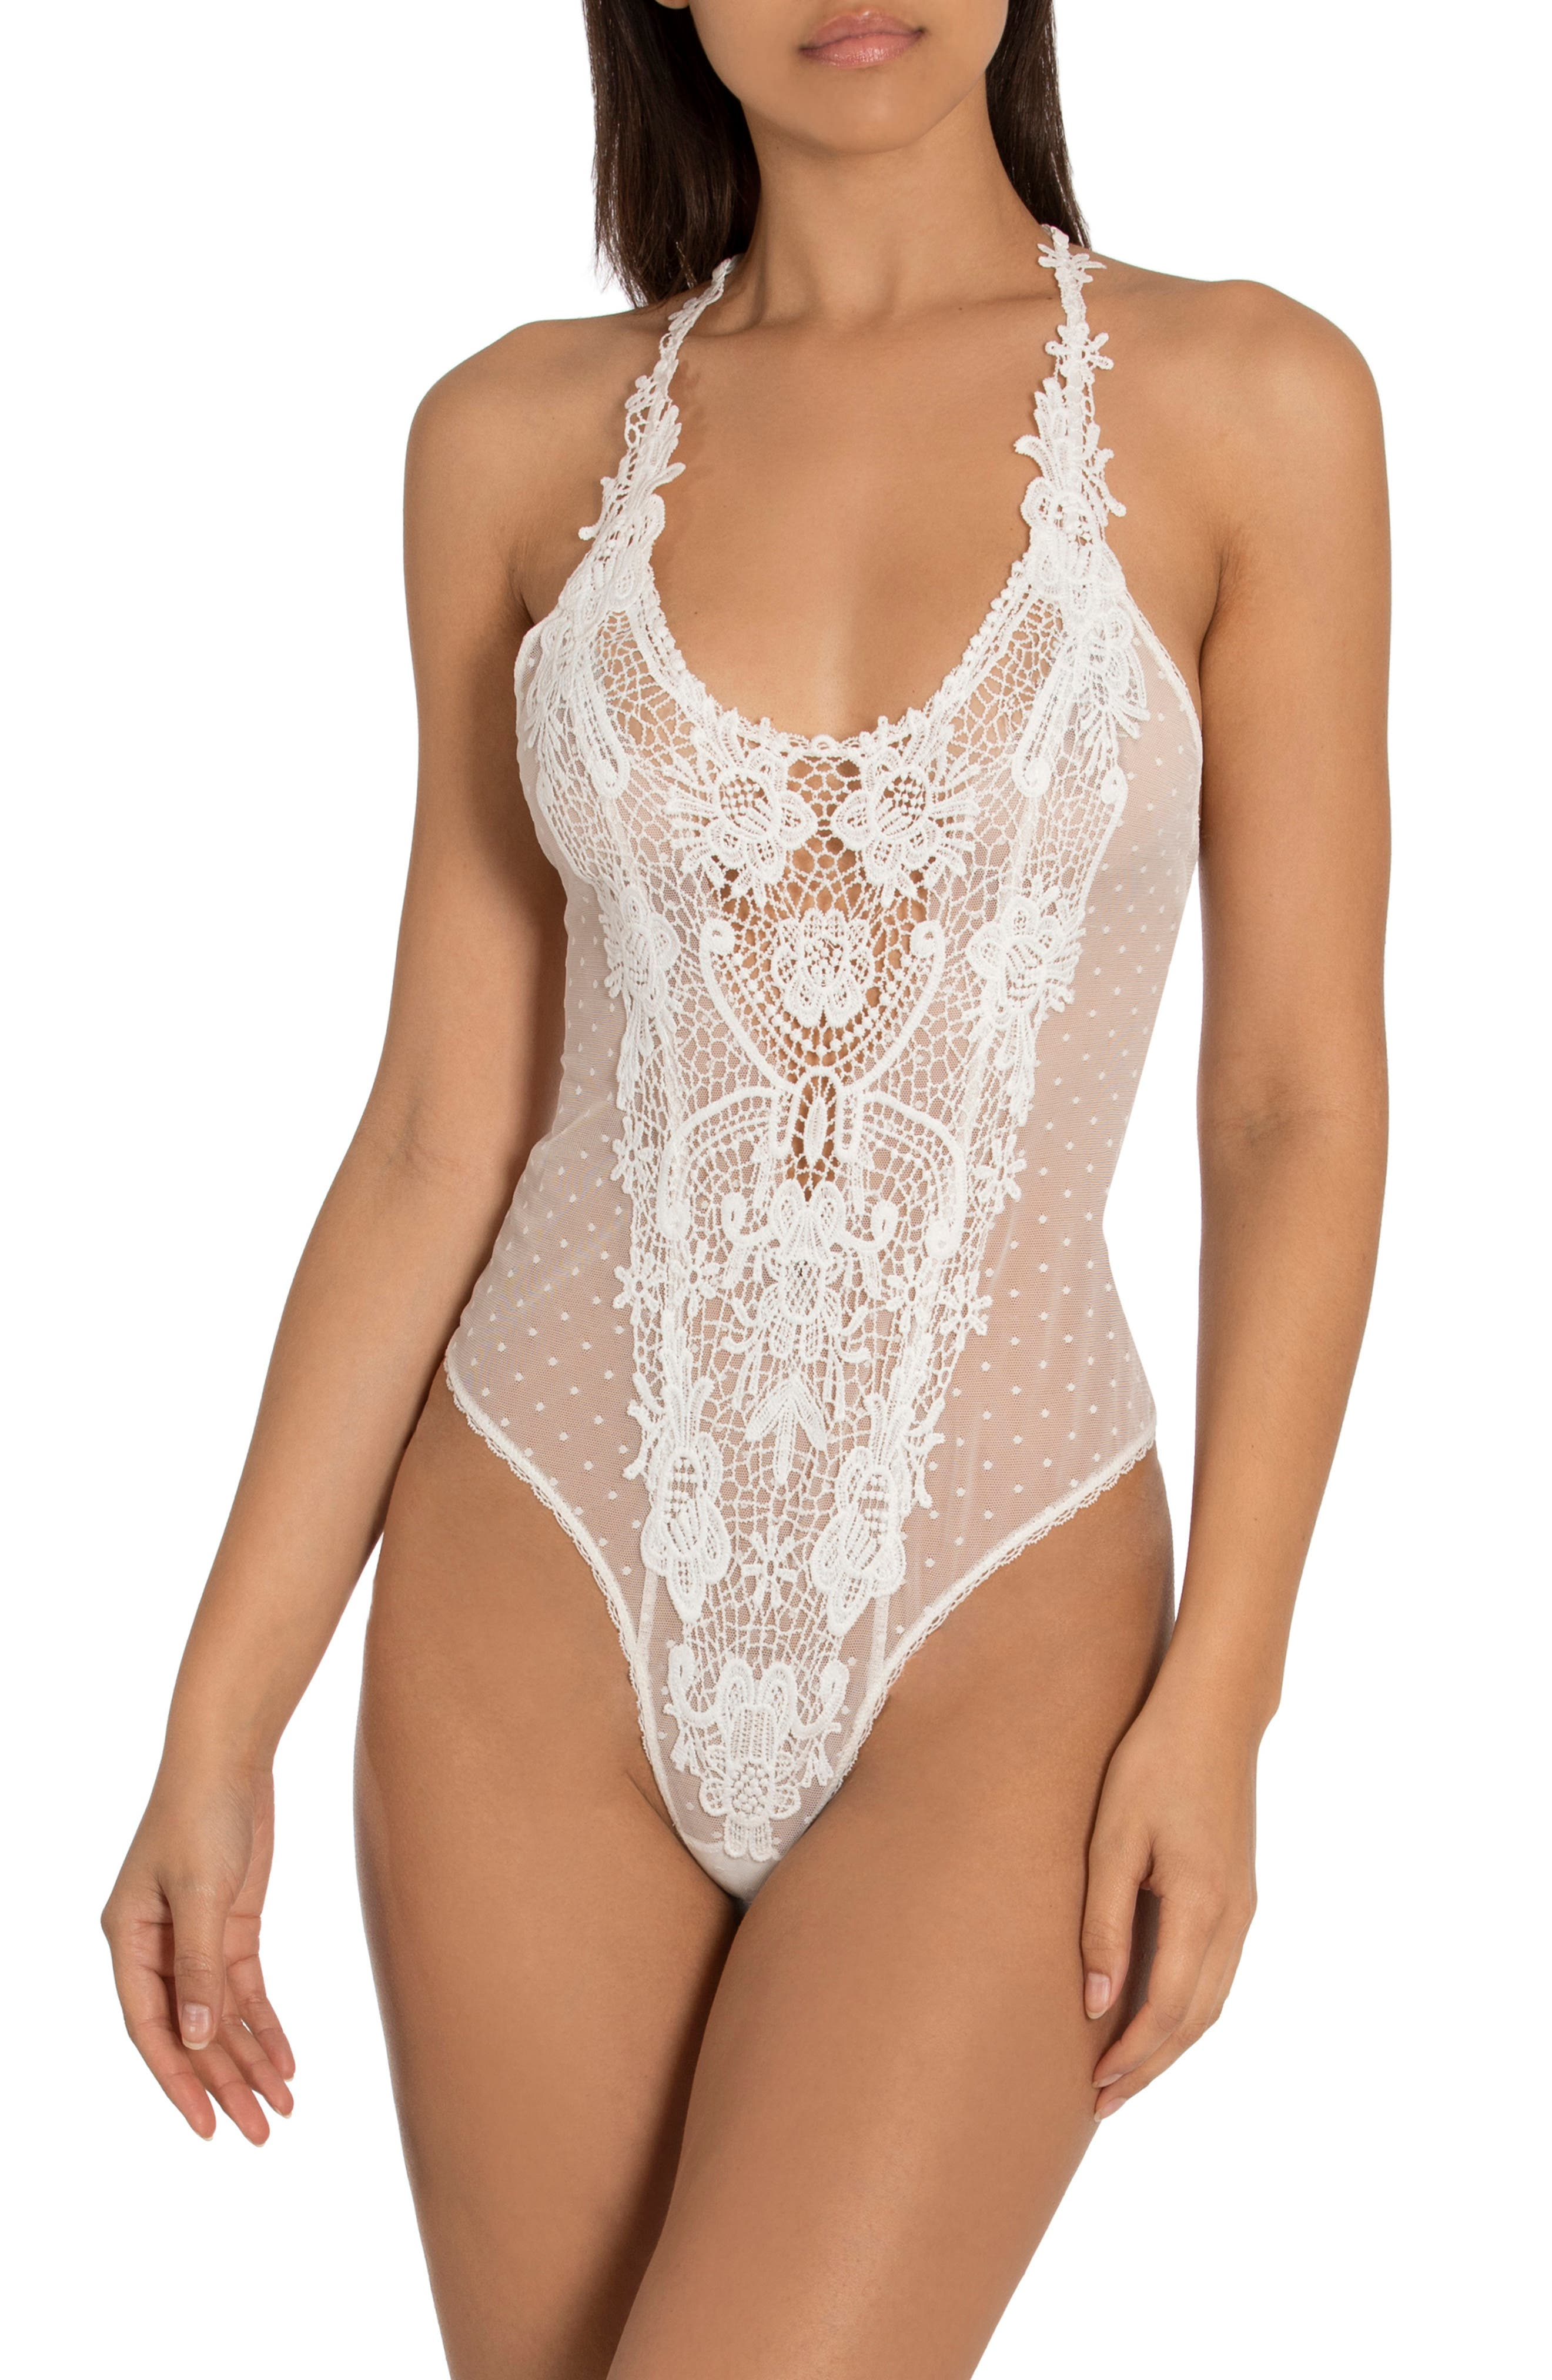 Yesterday Lace Panel Teddy